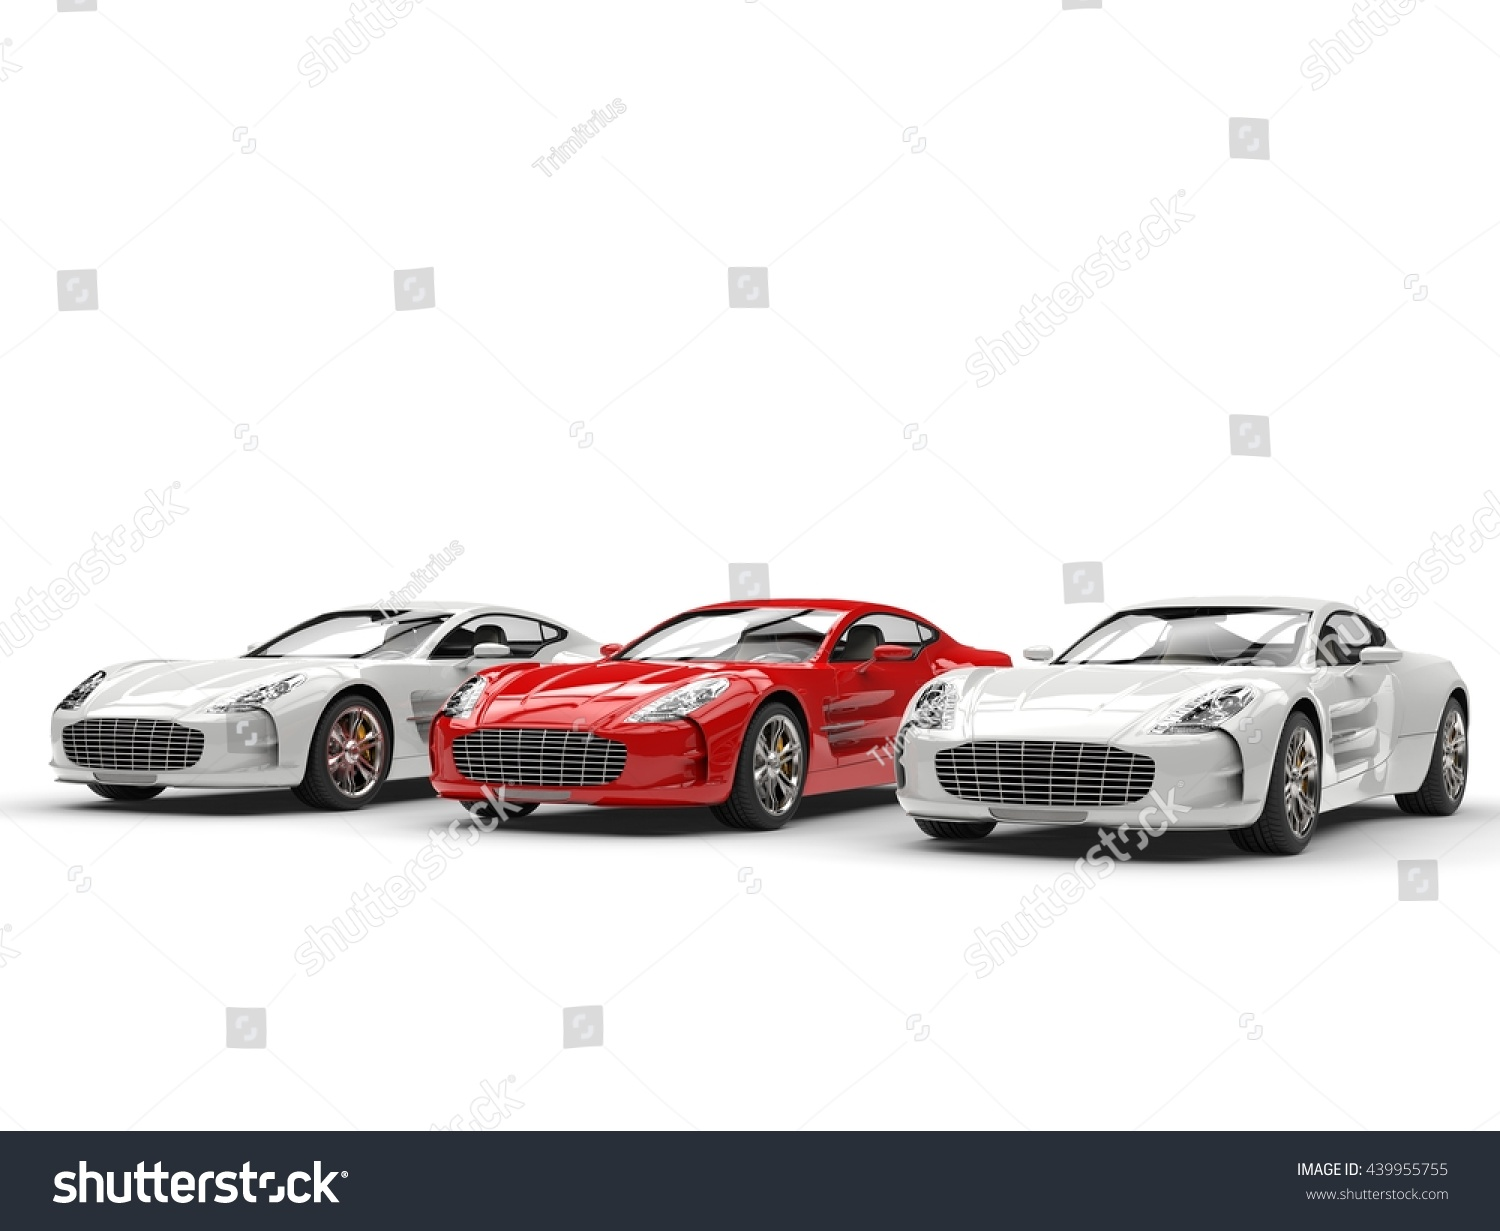 red sports car stands out 3d stock illustration 439955755. Black Bedroom Furniture Sets. Home Design Ideas